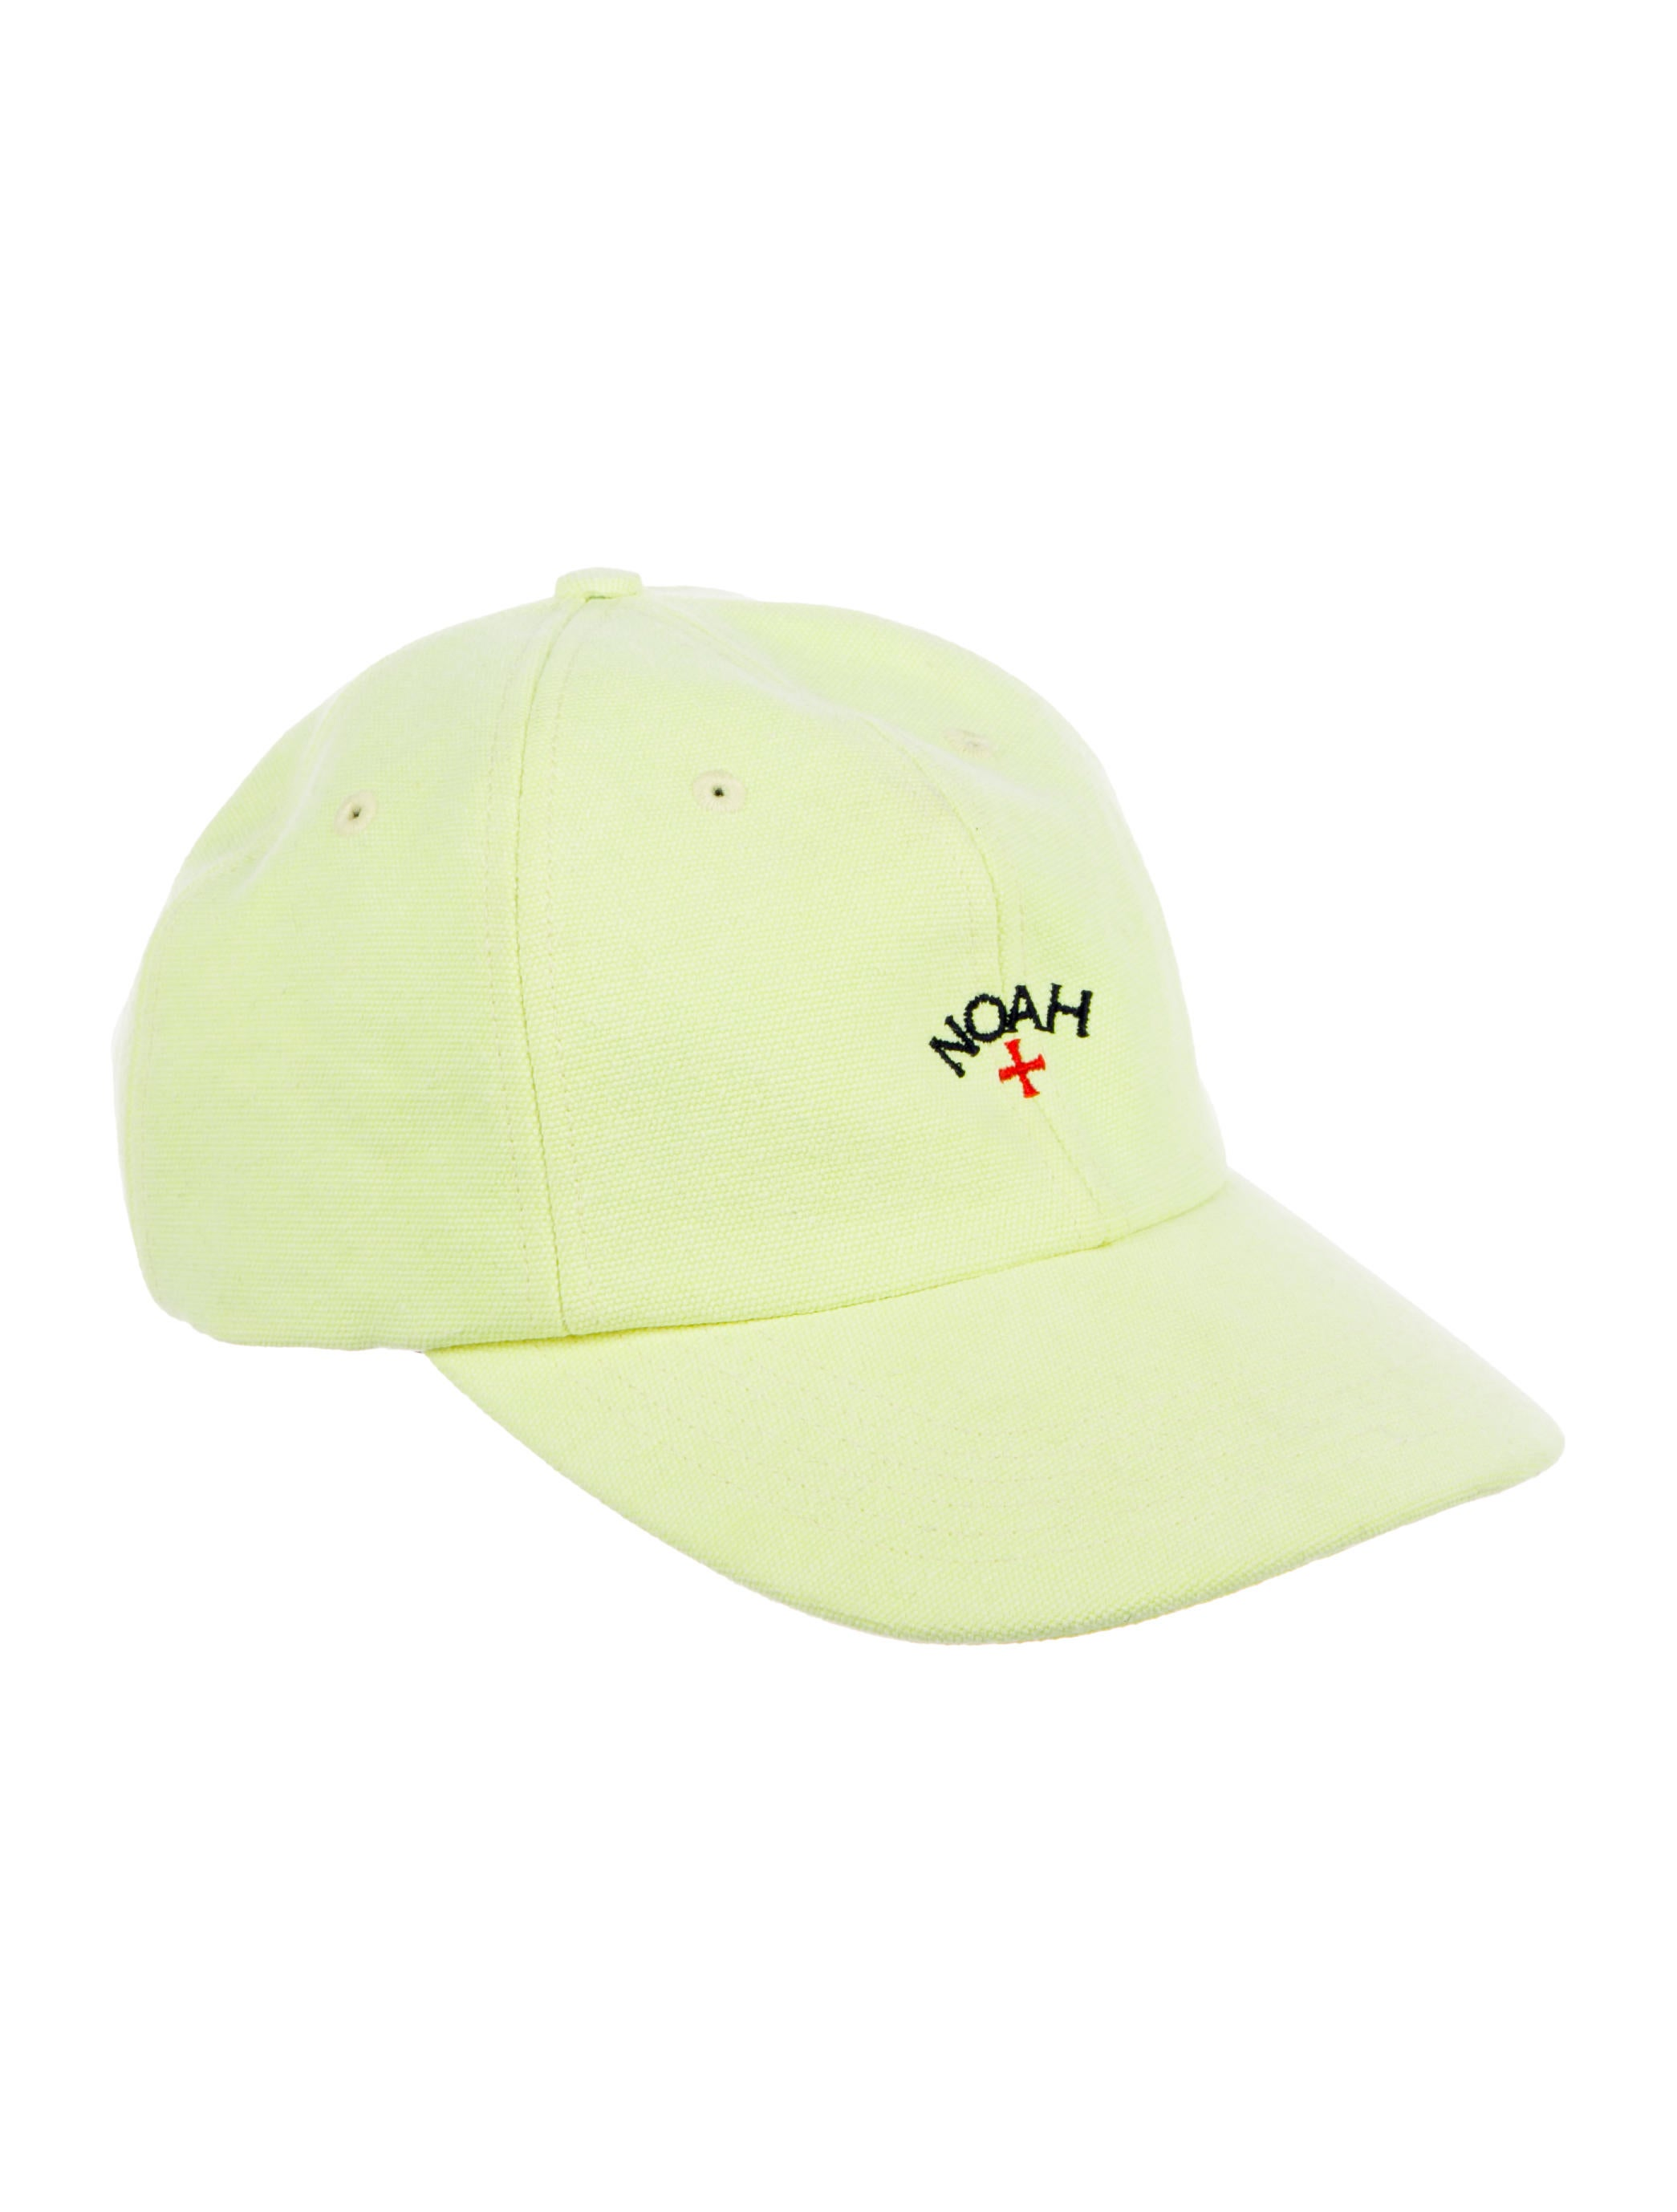 Noah Logo Baseball Cap - Accessories - WNOAH20042  dcadbefe126